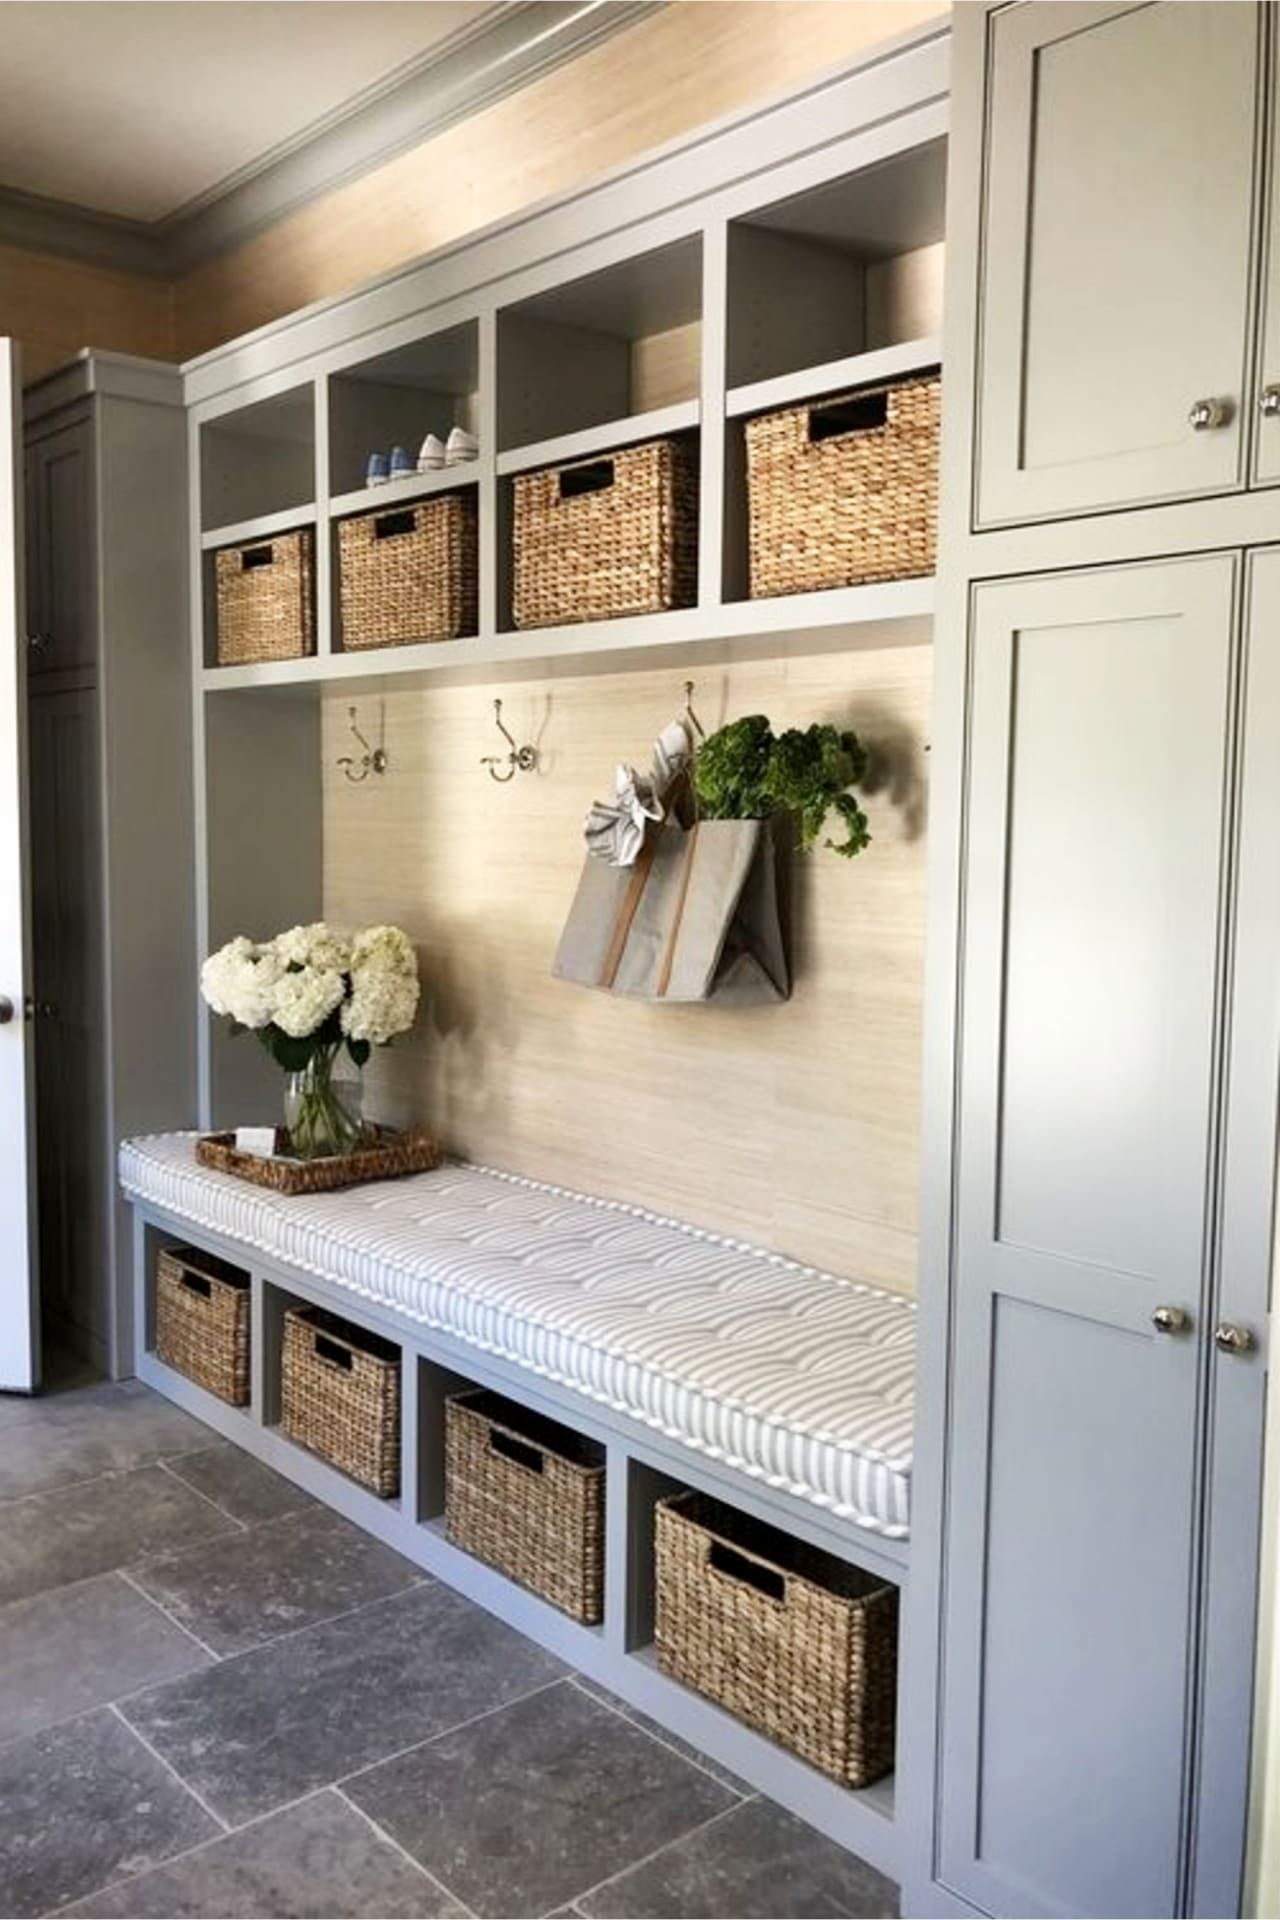 Mudroom Ideas Diy Rustic Farmhouse Mudroom Decor Storage And